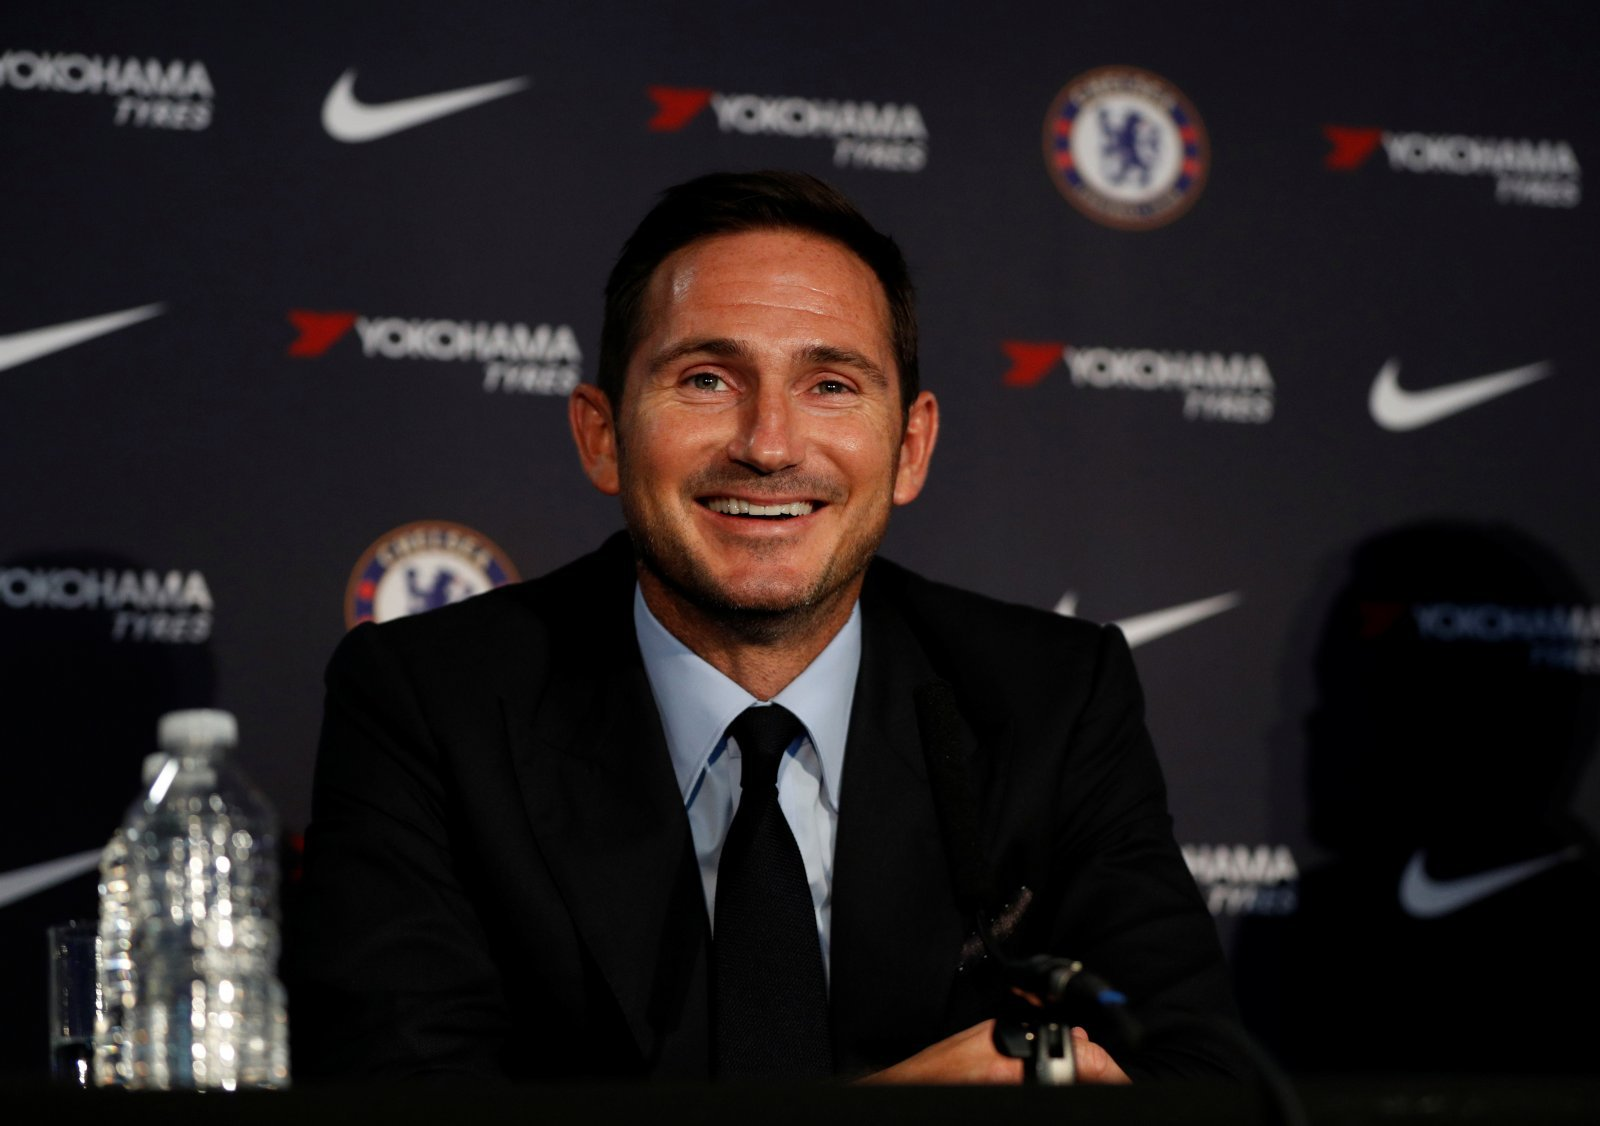 Lampard Given A Glowing Managerial Reference By Somebody We All Know Well